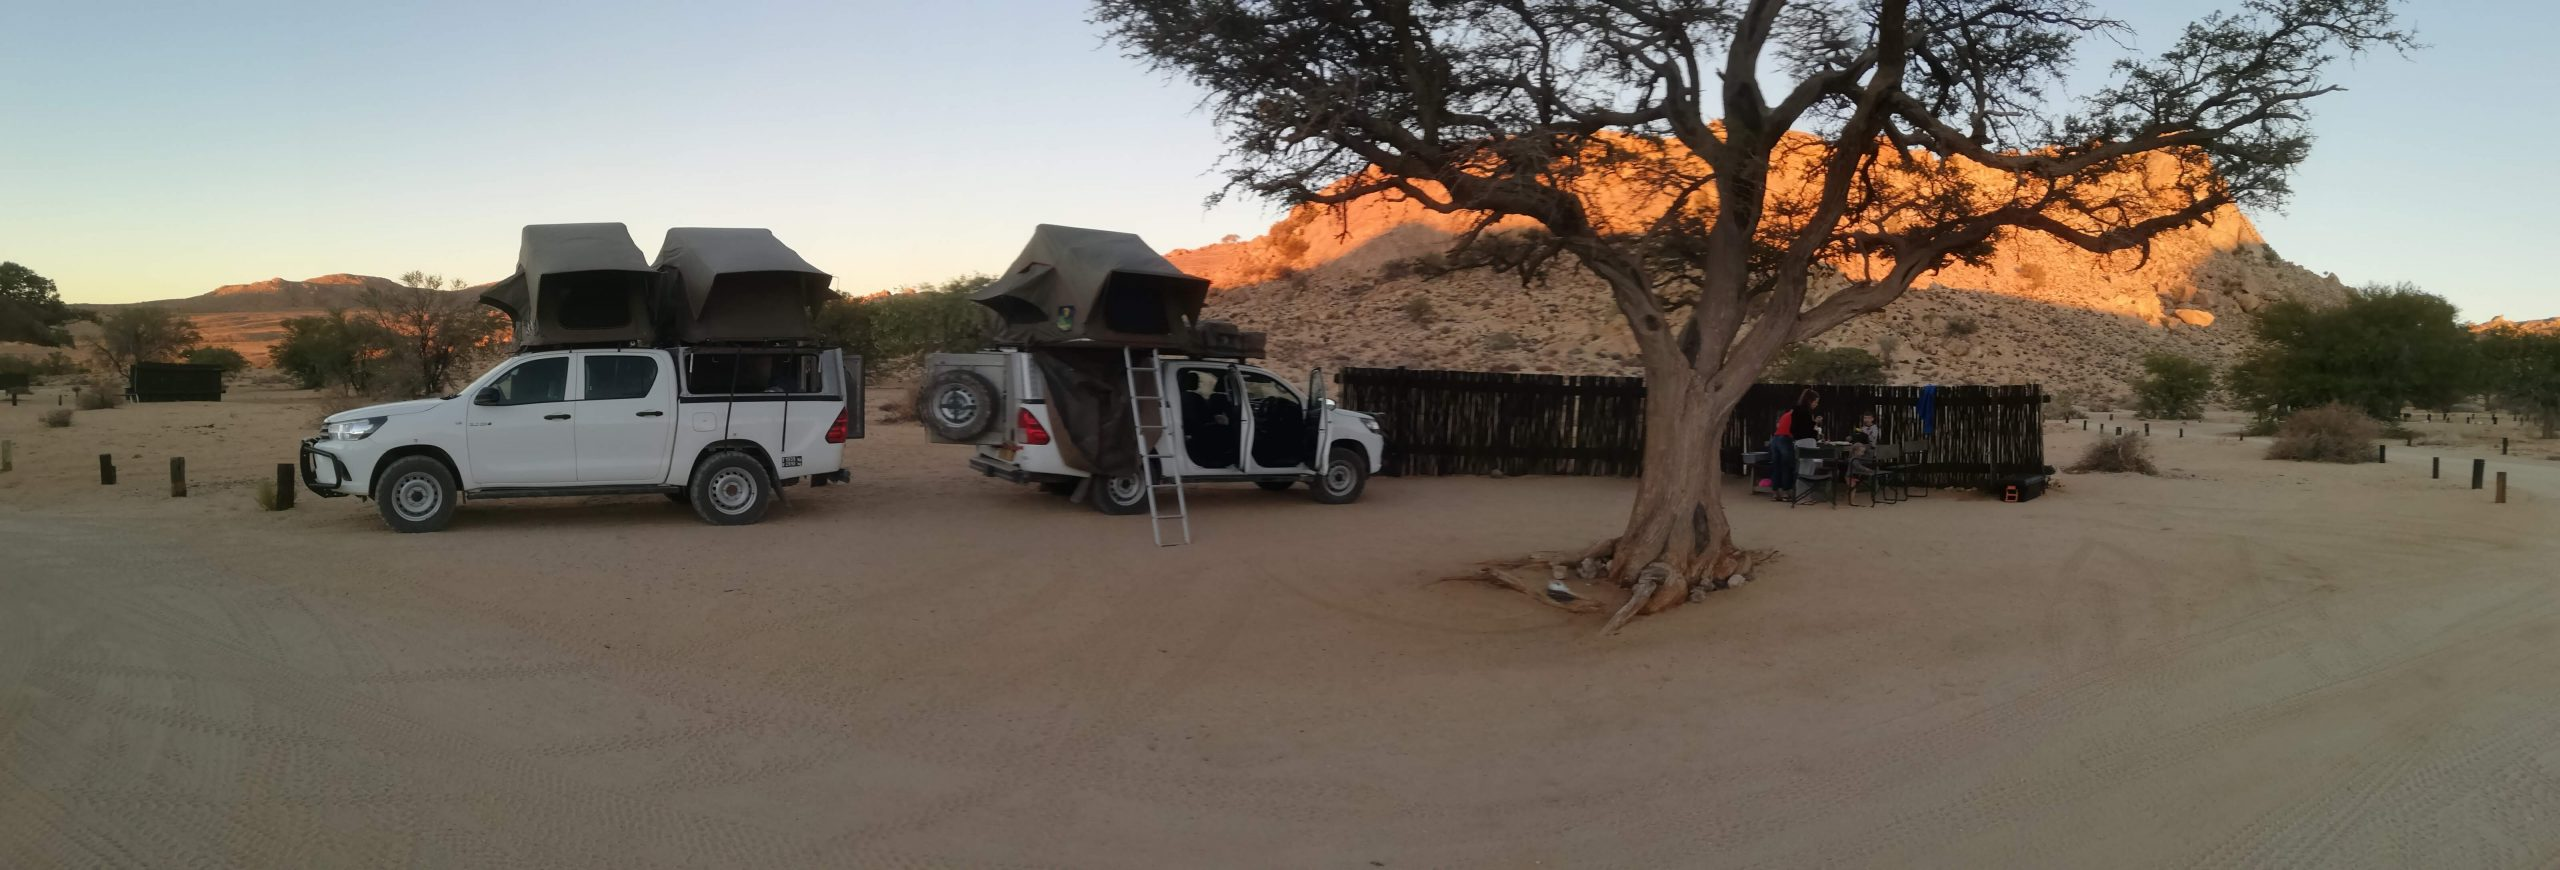 Kids Love Travel: 4x4 through Namibia